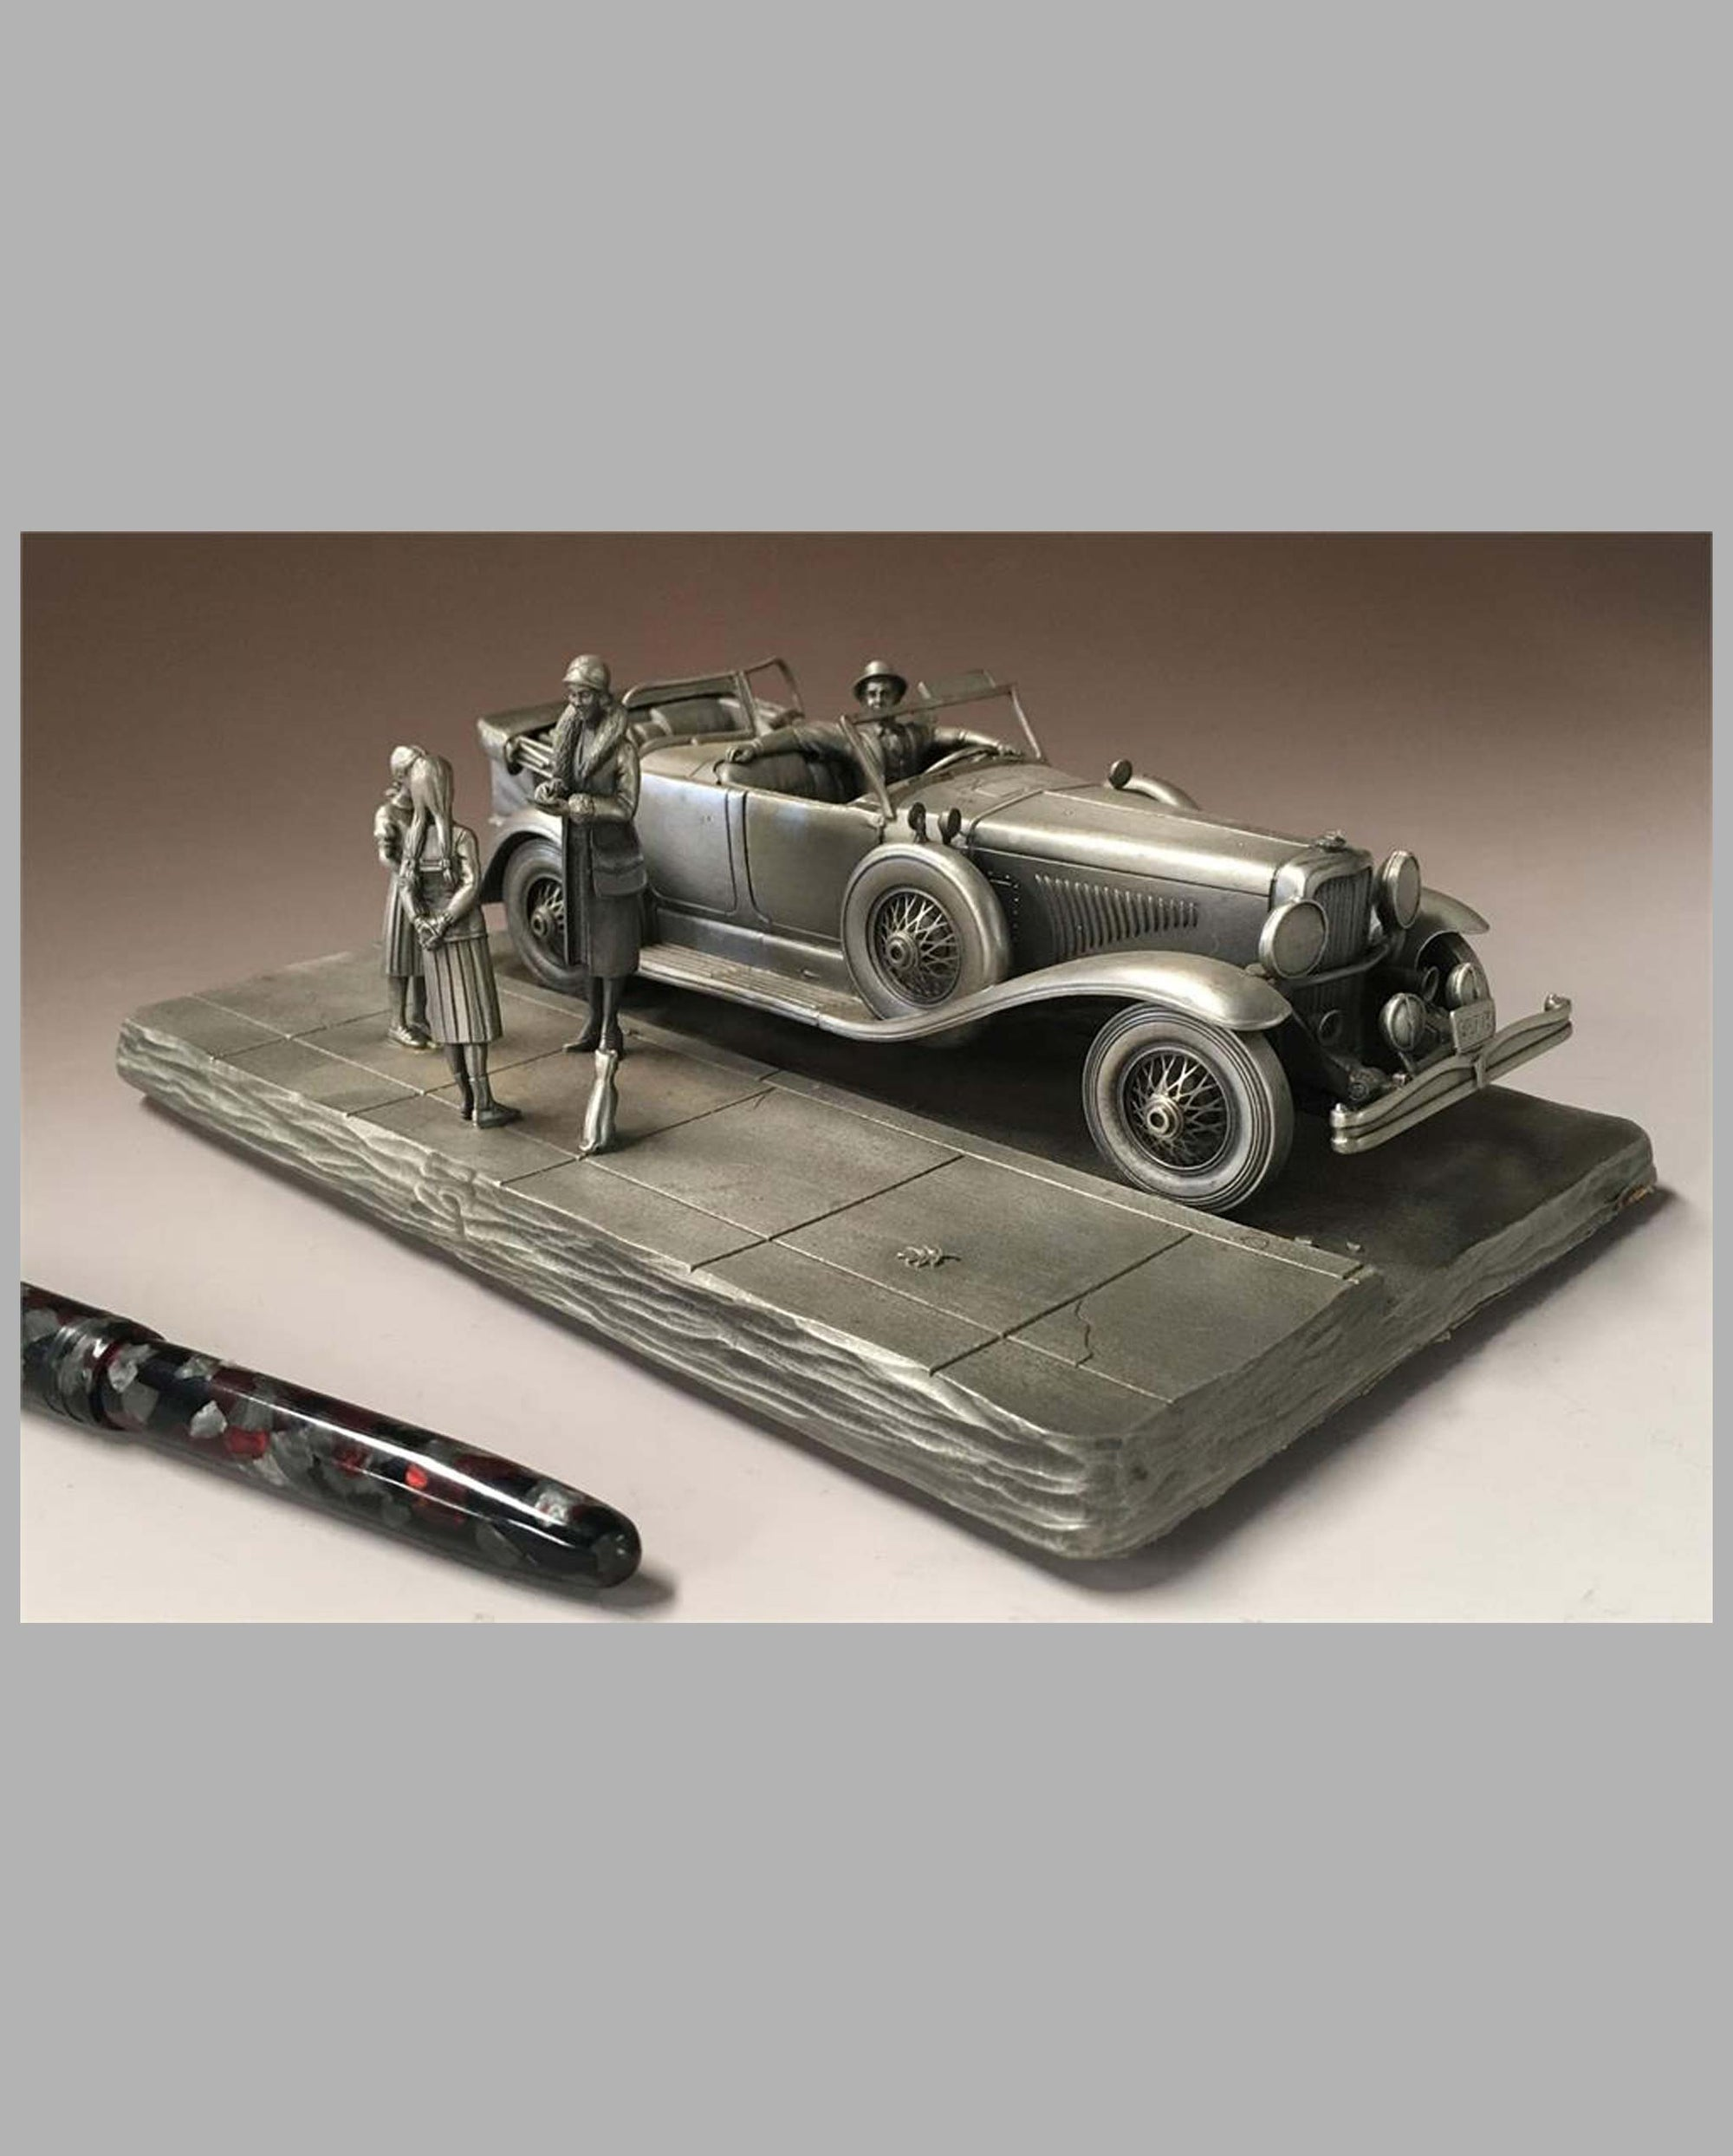 The Duesenberg Model J Pewter Sculpture by Raymond Meyers